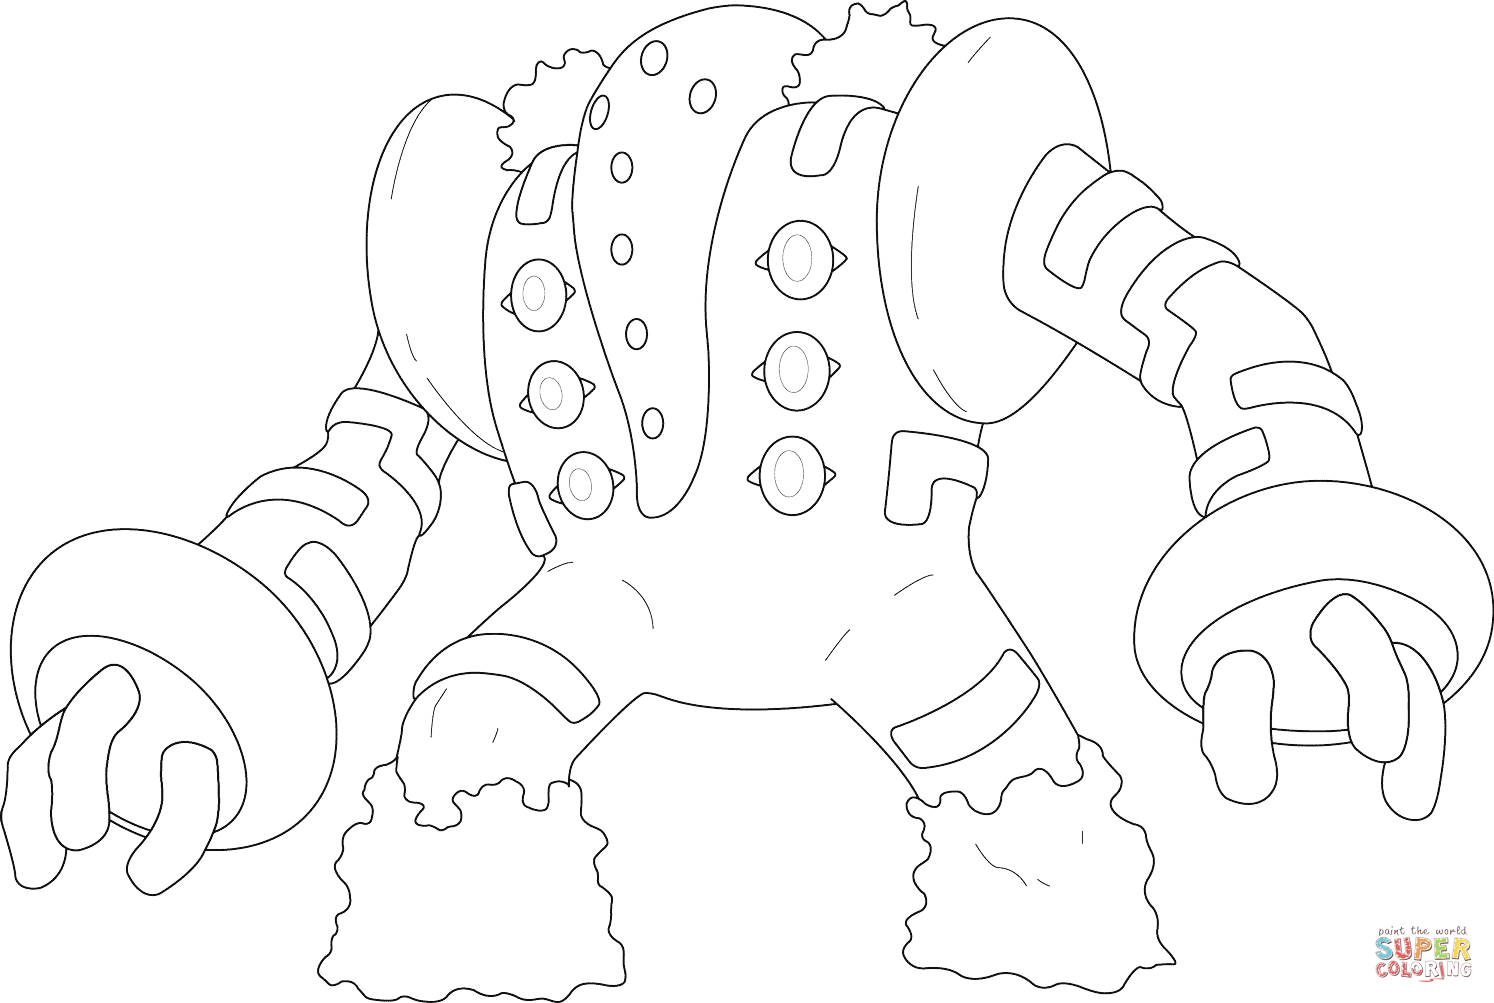 Regigigas Pokemon Coloring Page Free Printable Coloring Pages